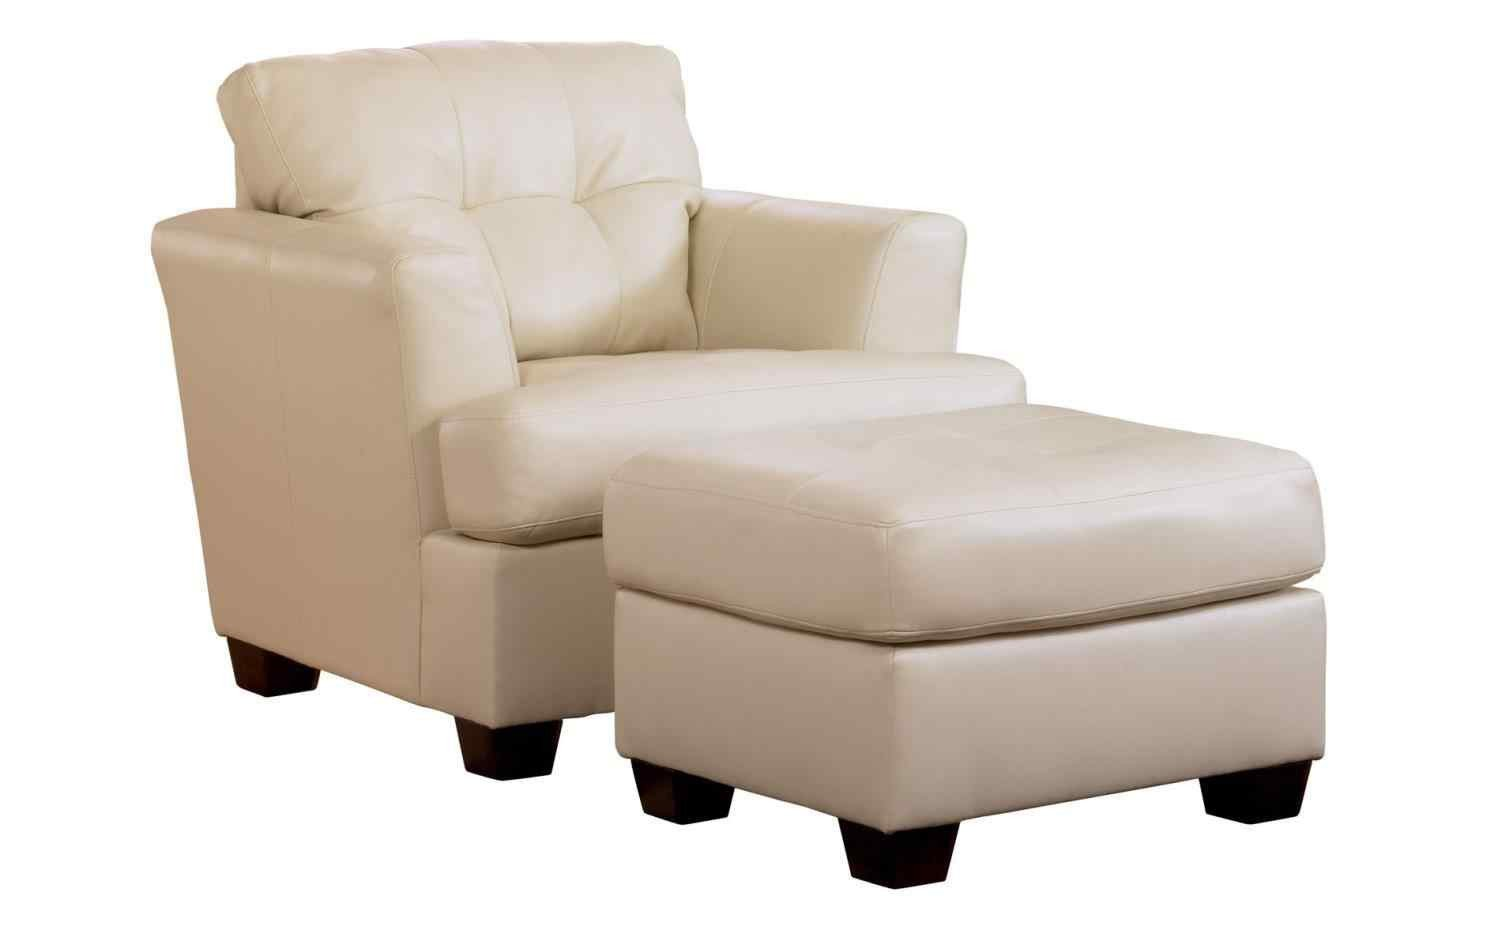 Most Comfortable Living Room Chair Awesome fortable Tv Chairs